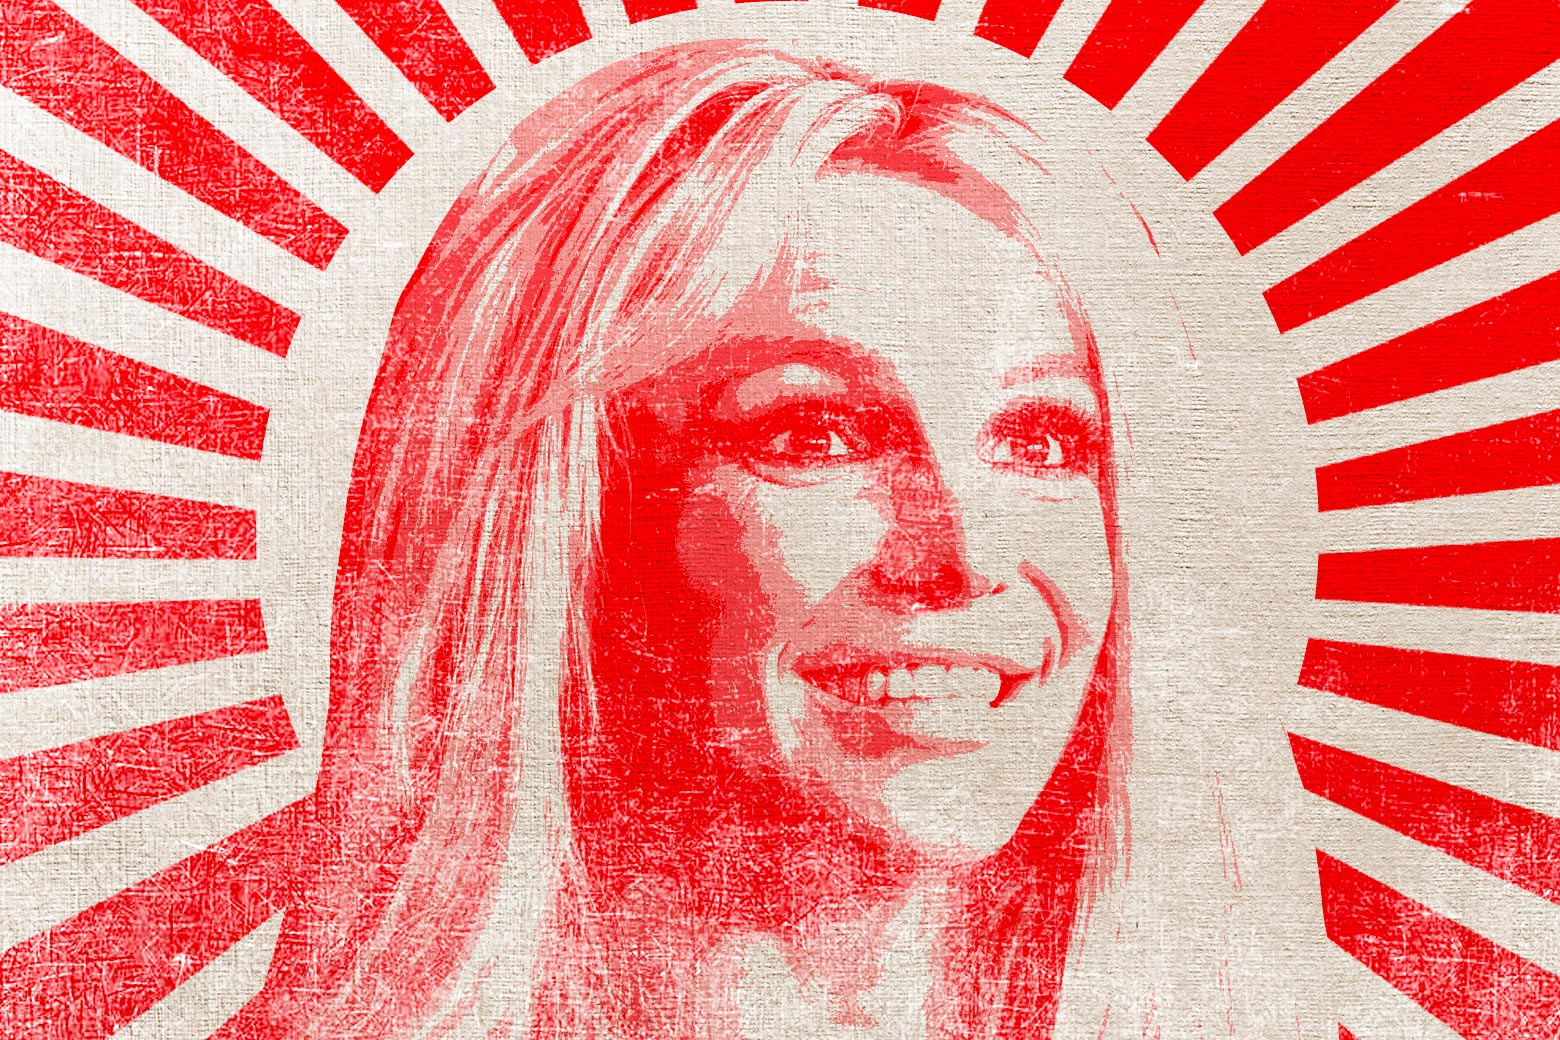 So Is Britney Spears a Democratic Socialist Now?